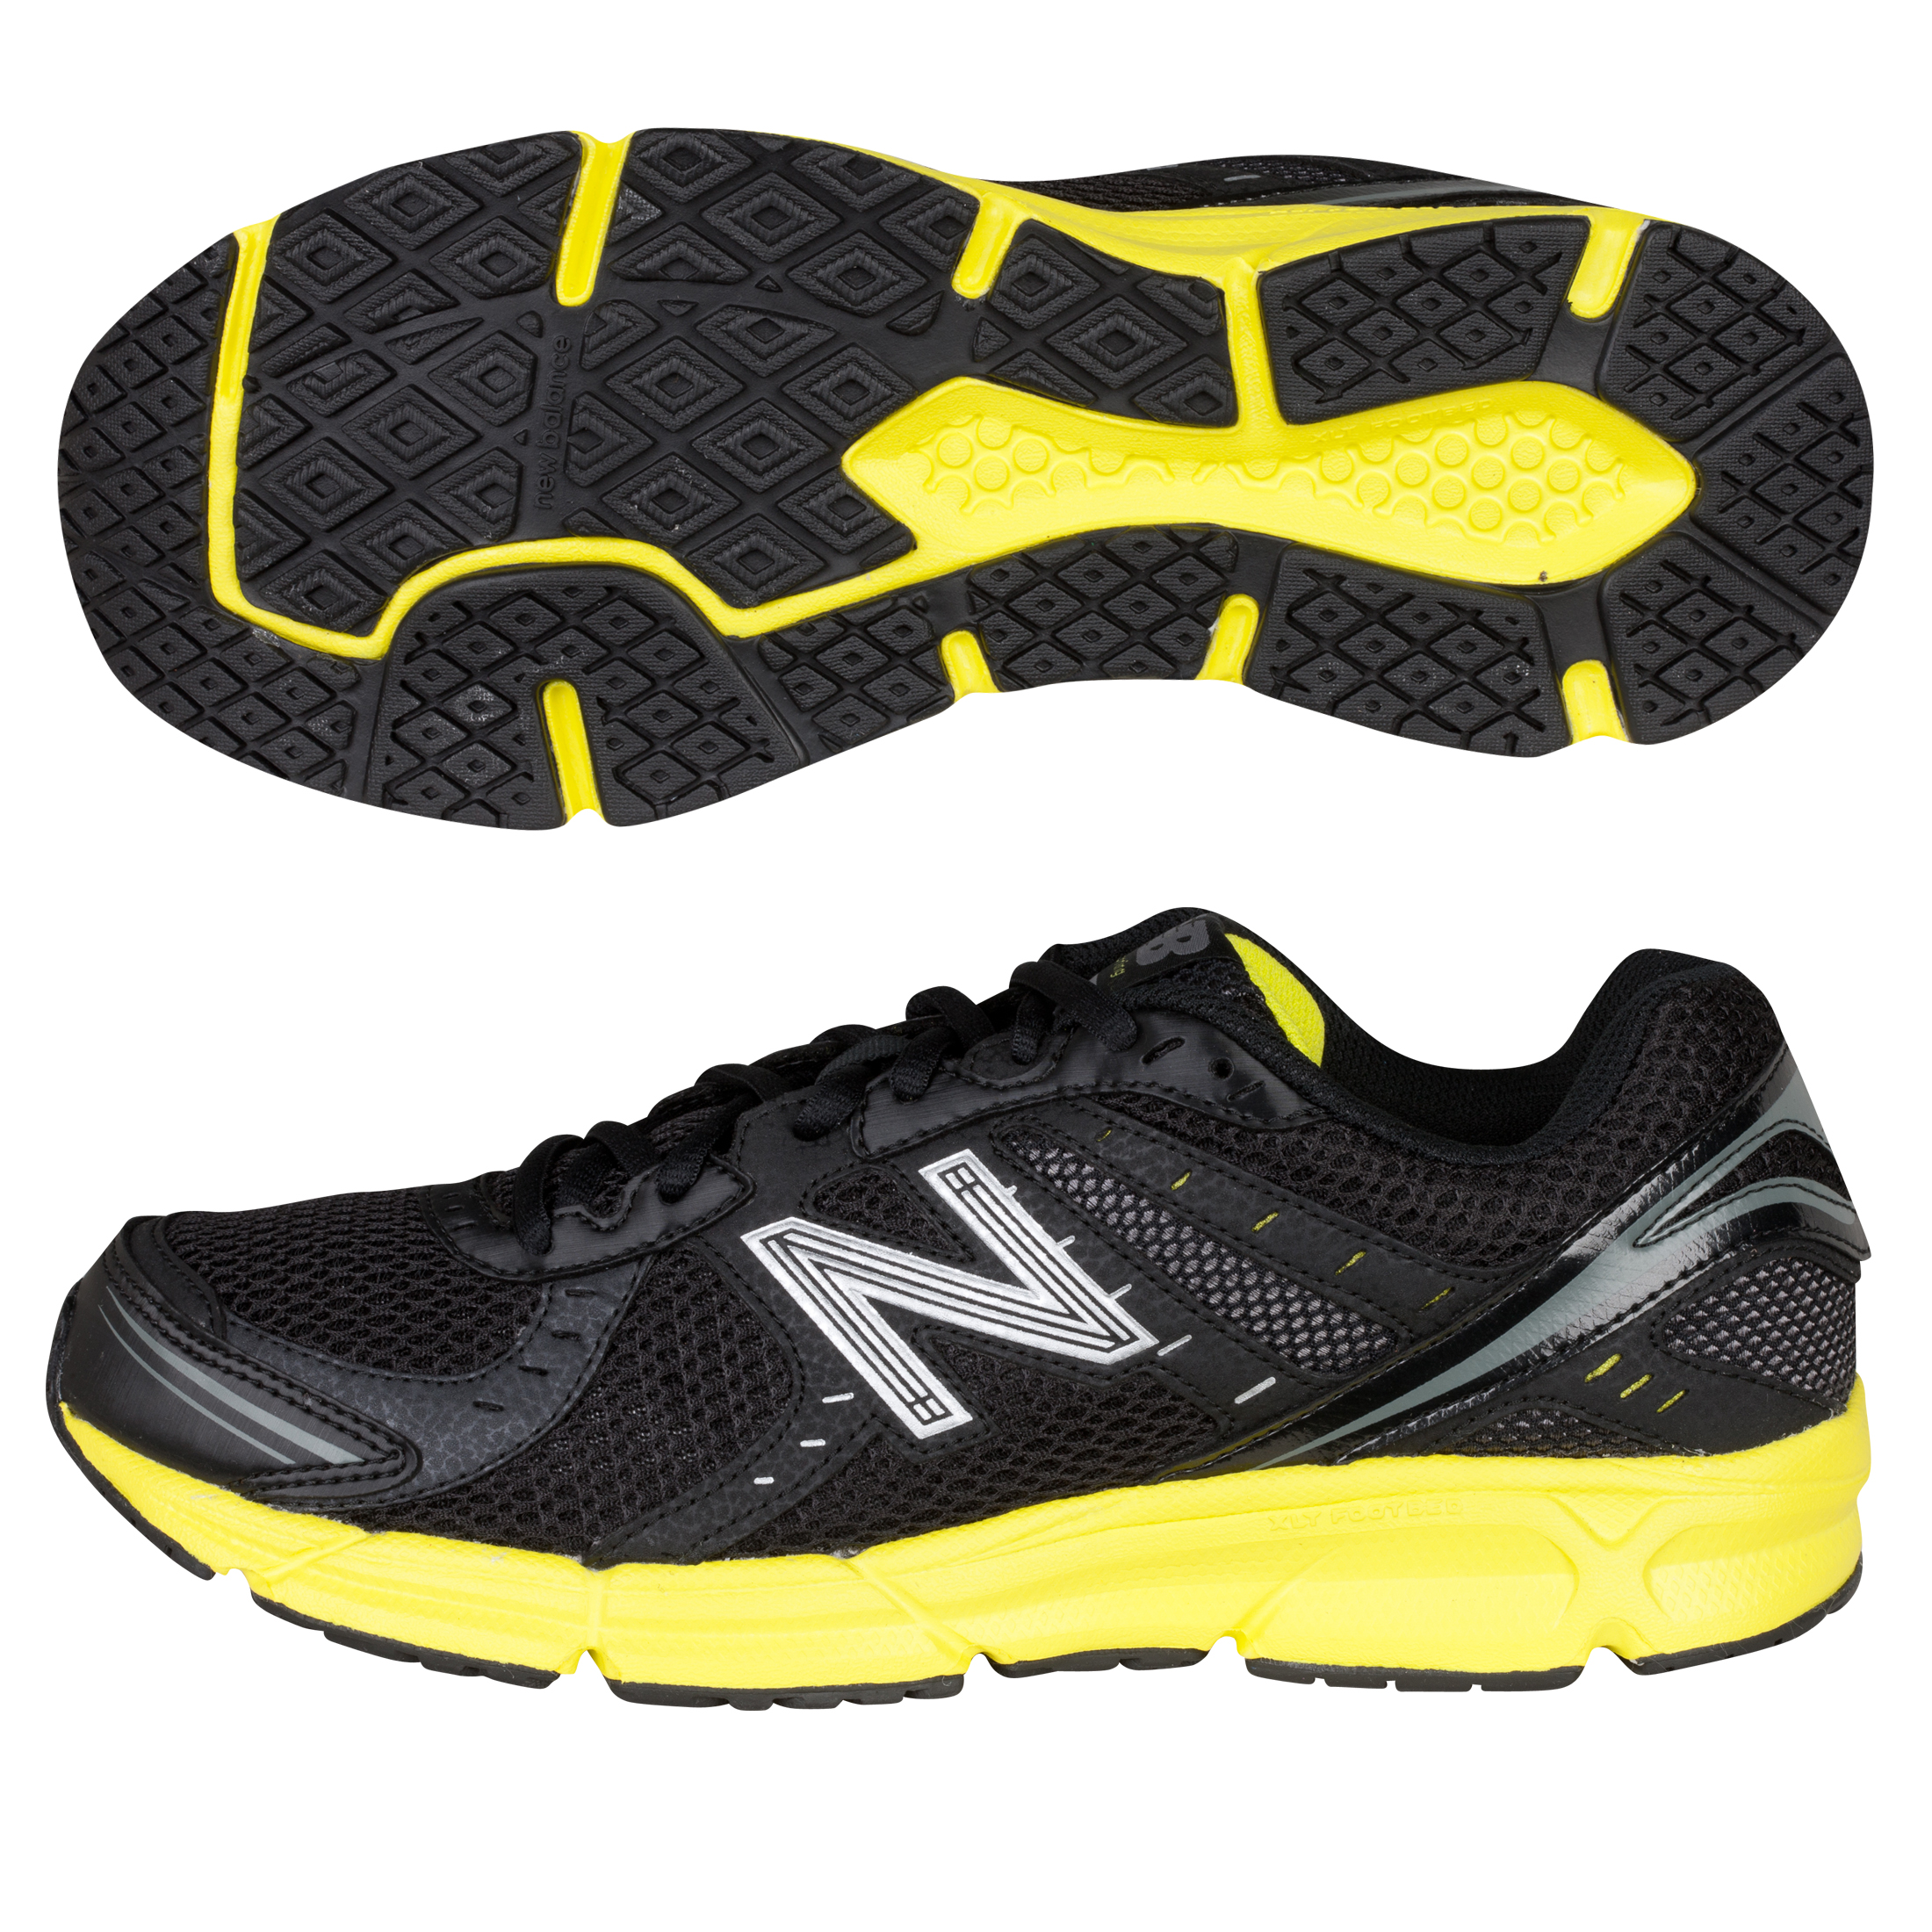 New Balance 470 Running Trainers - Black/Yellow